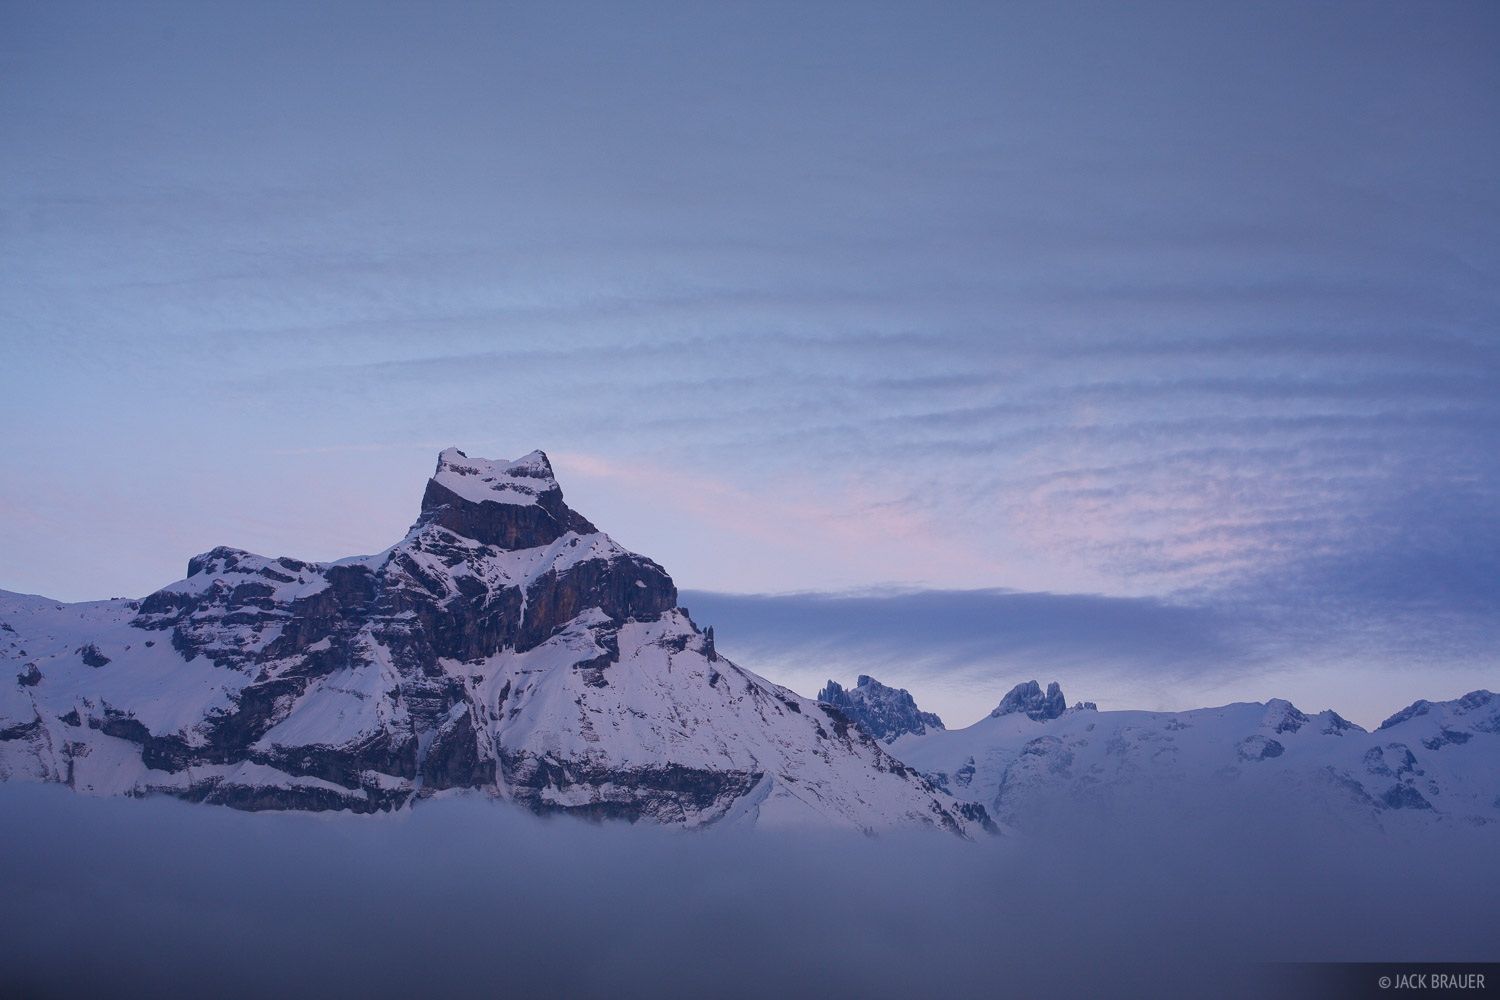 Hahnen rises over the clouds above the town of Engelberg, Switzerland.